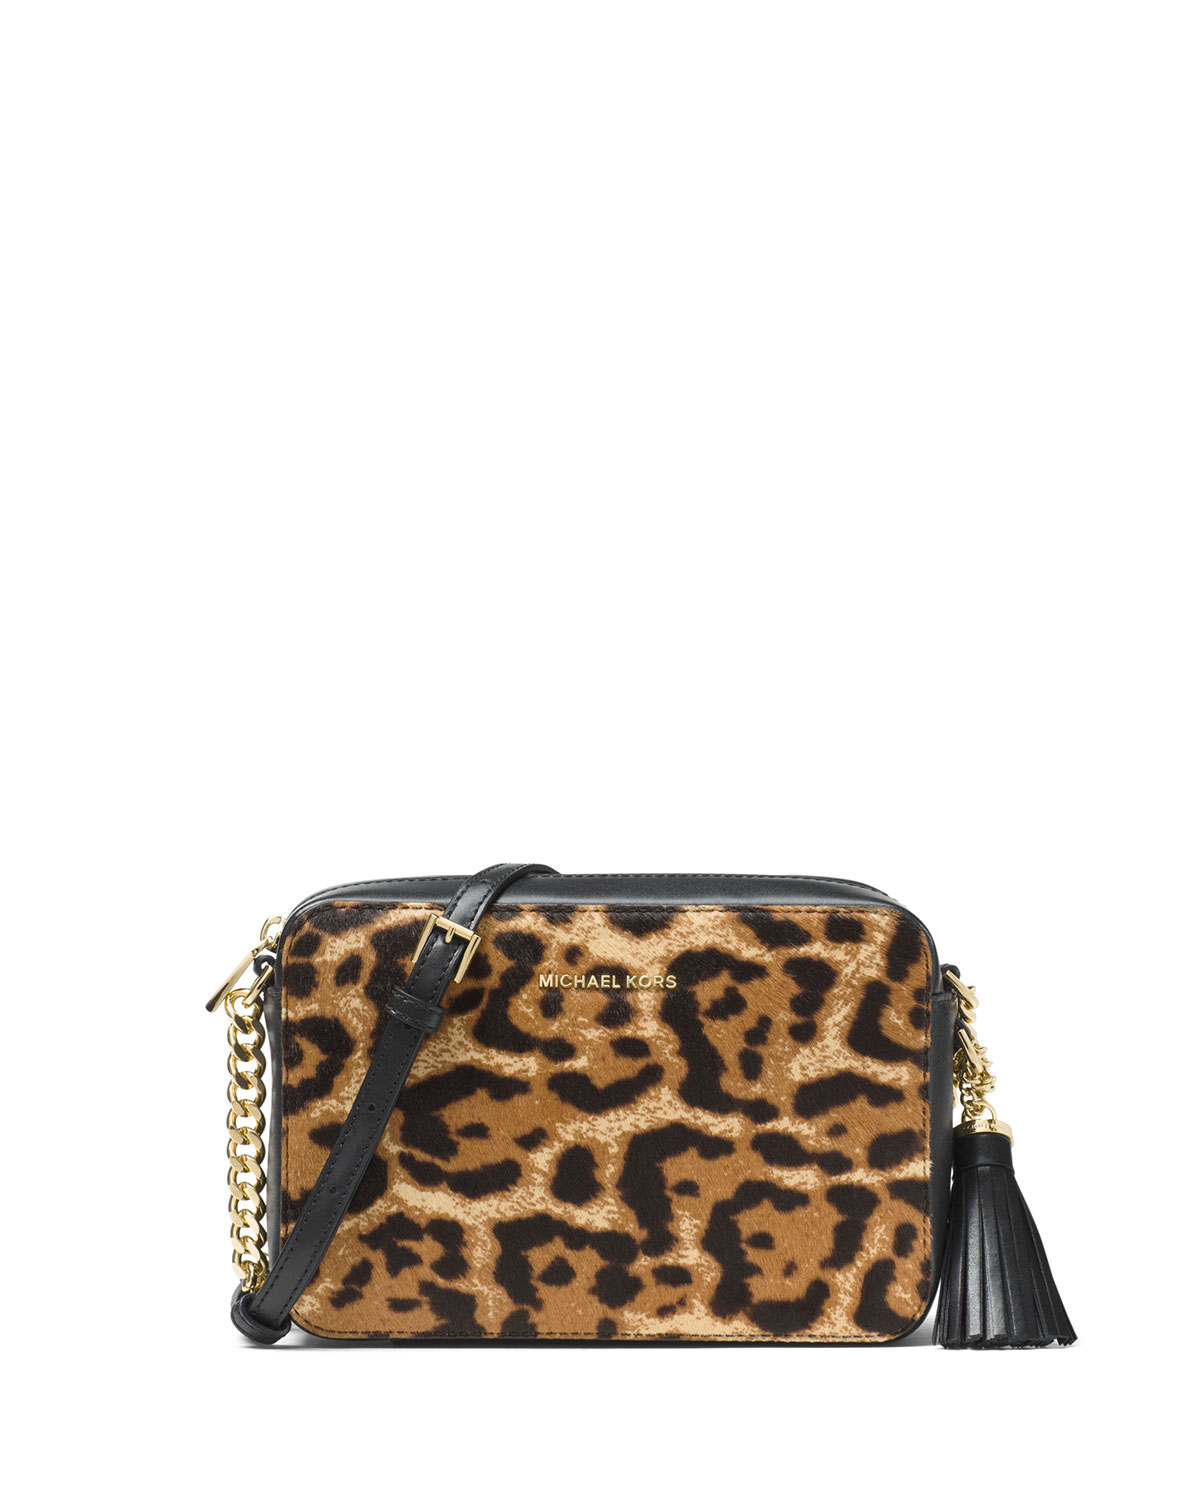 Ginny Medium Leopard Print Calf Hair Camera Bag